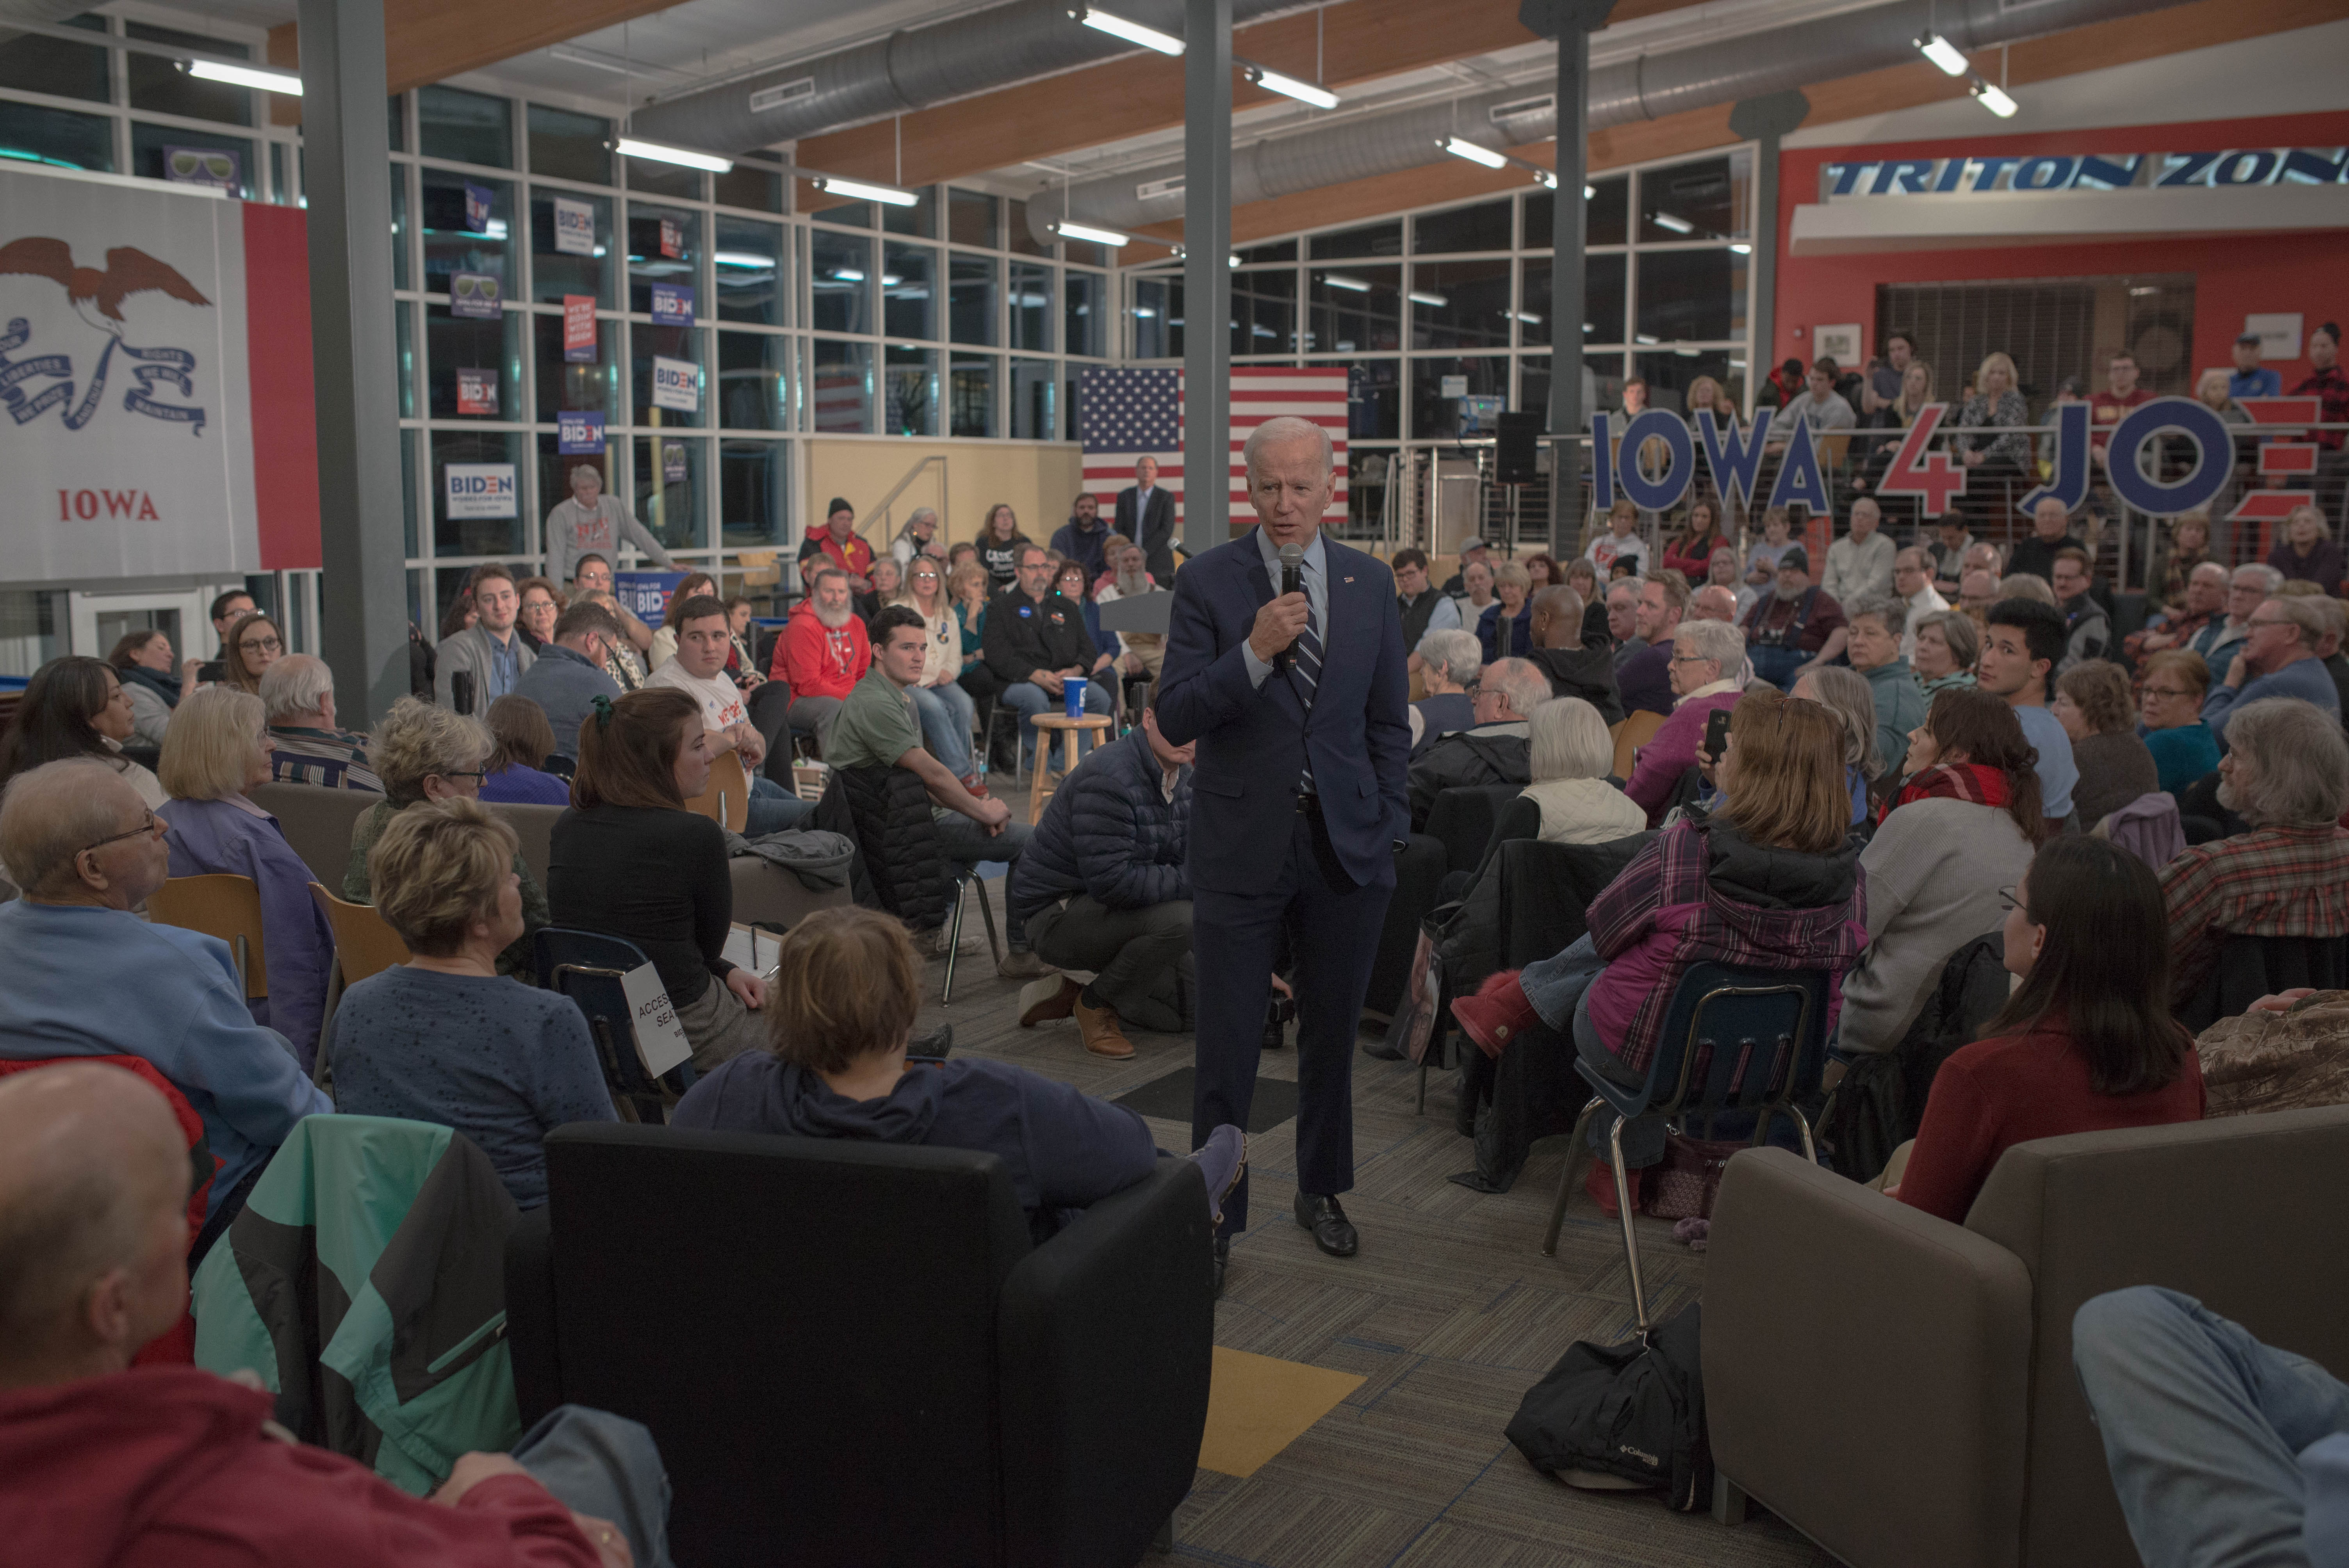 Presidential candidate, former Vice President Joe Biden  during a community event in Fort Dodge, Iowa, Jan. 21, 2020.